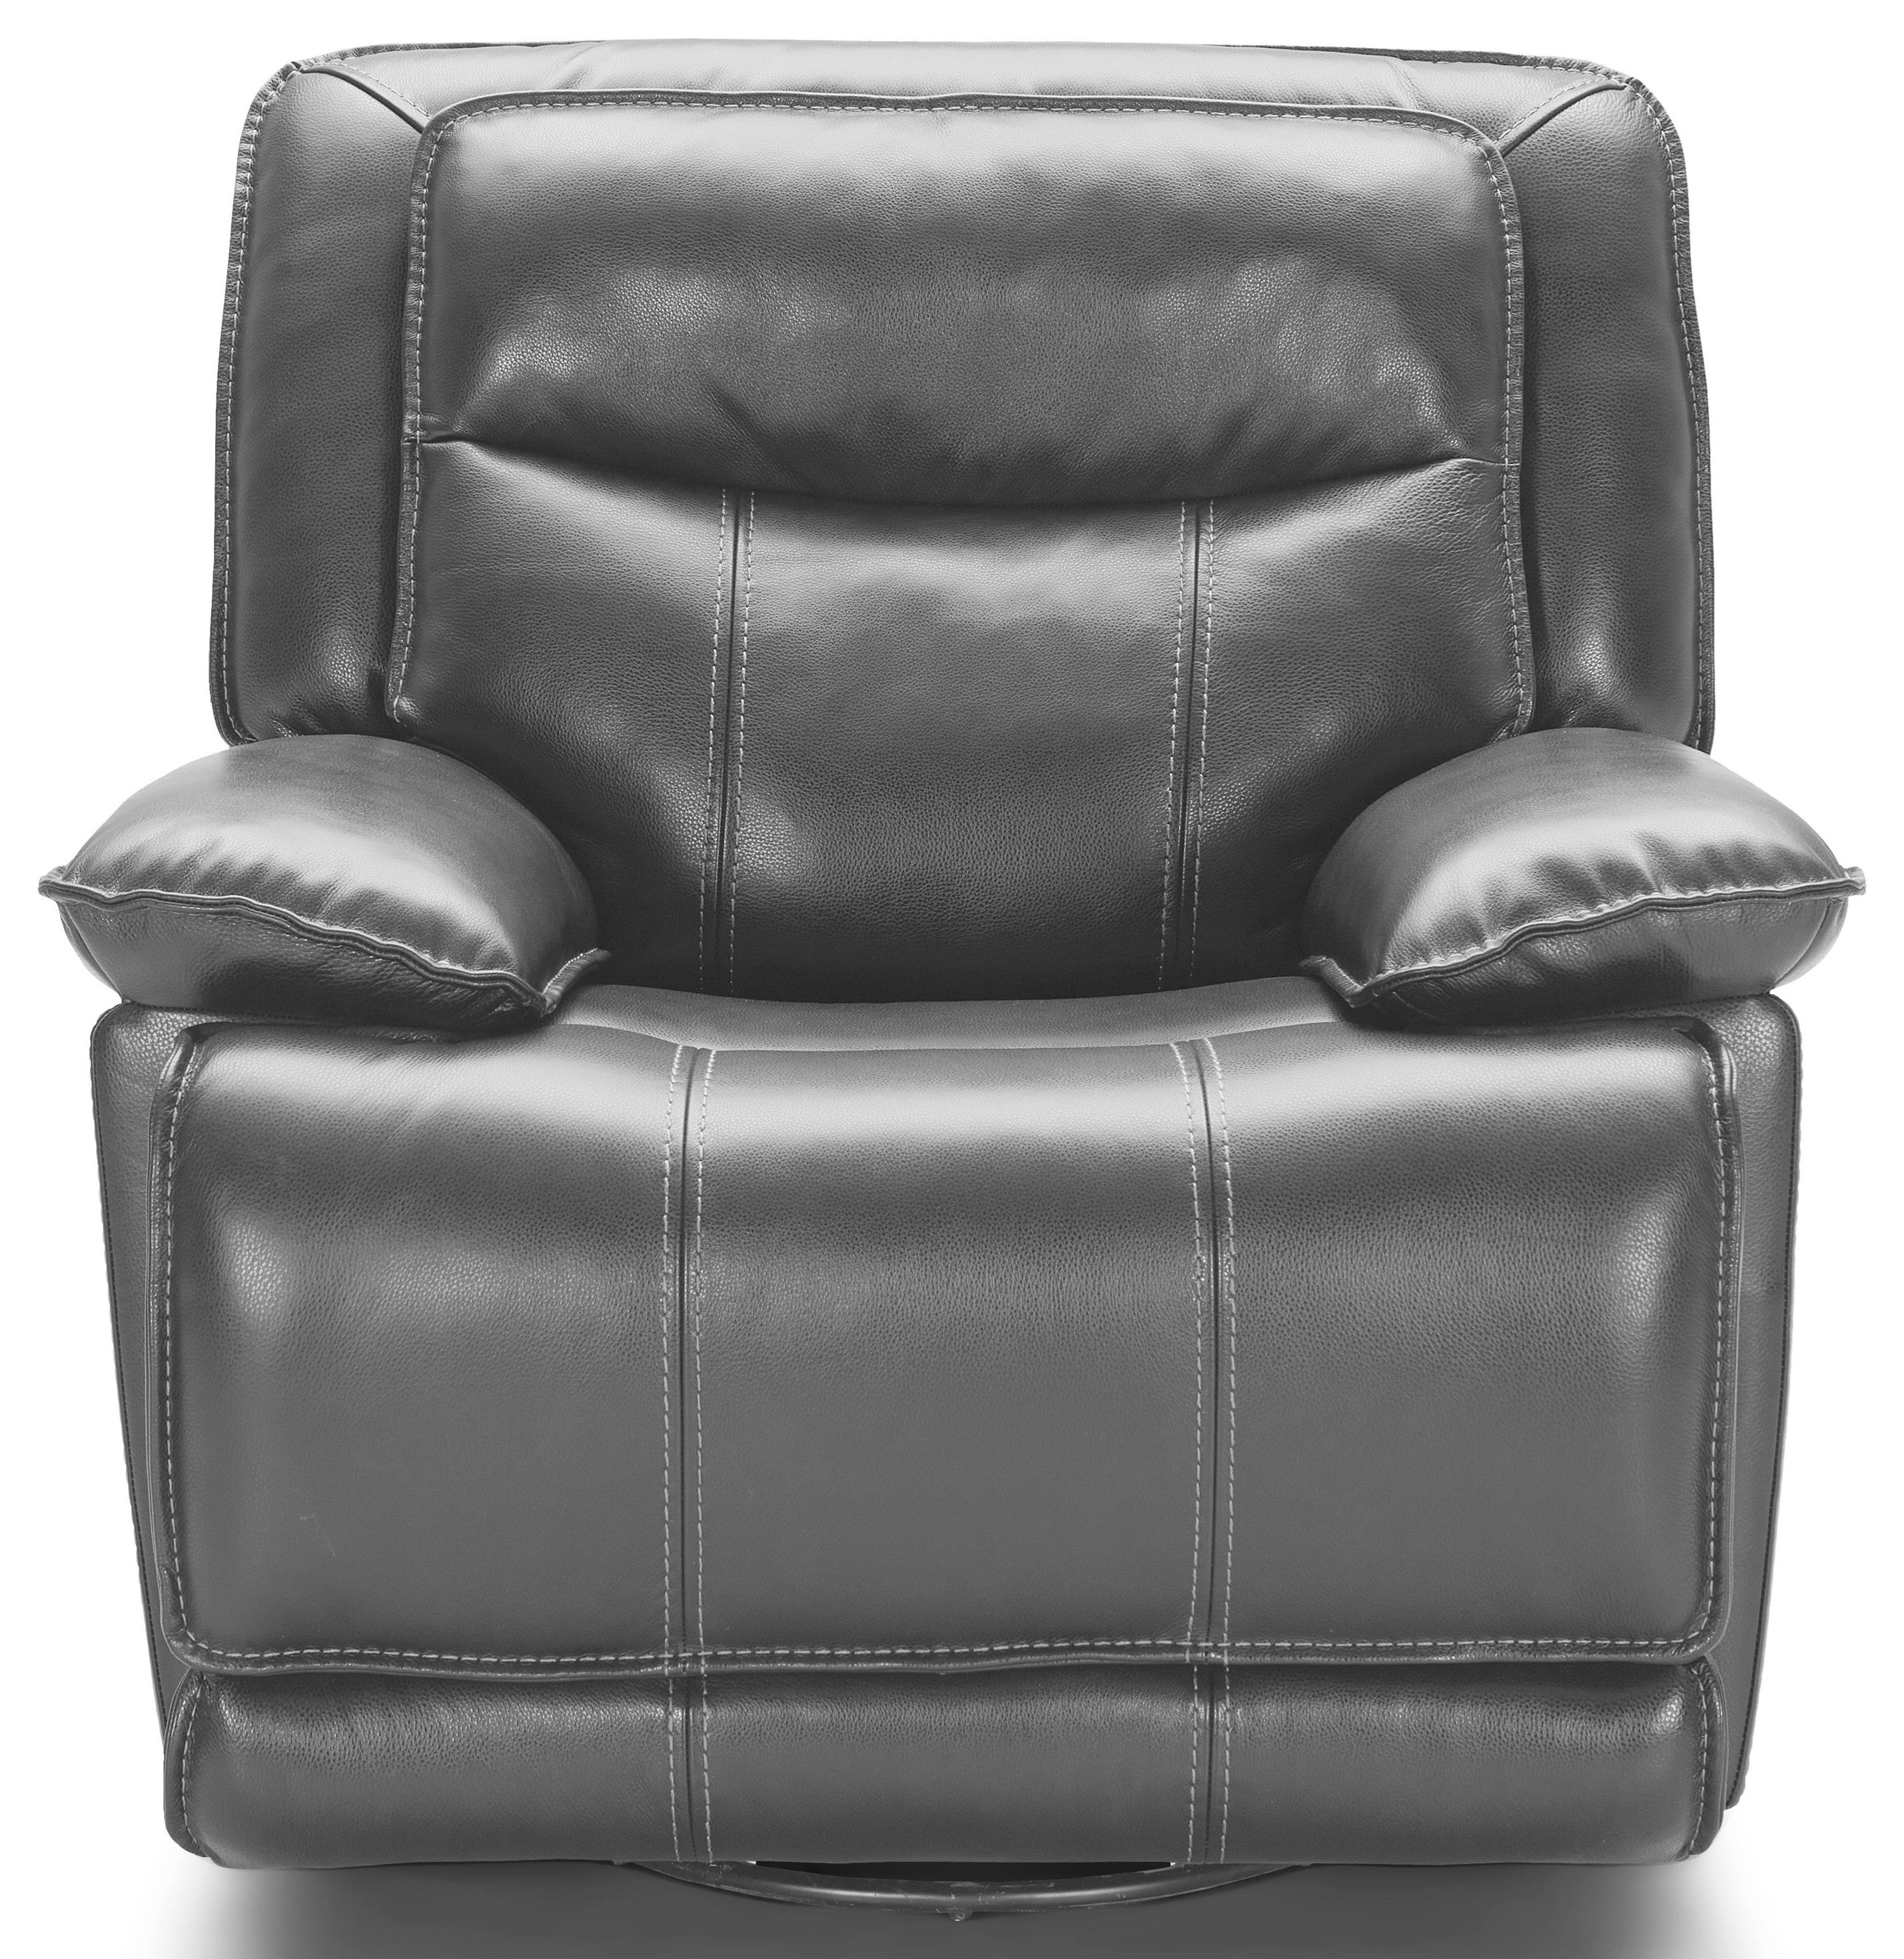 KM030 Swivel Glider Recliner by Kuka Home at Beck's Furniture